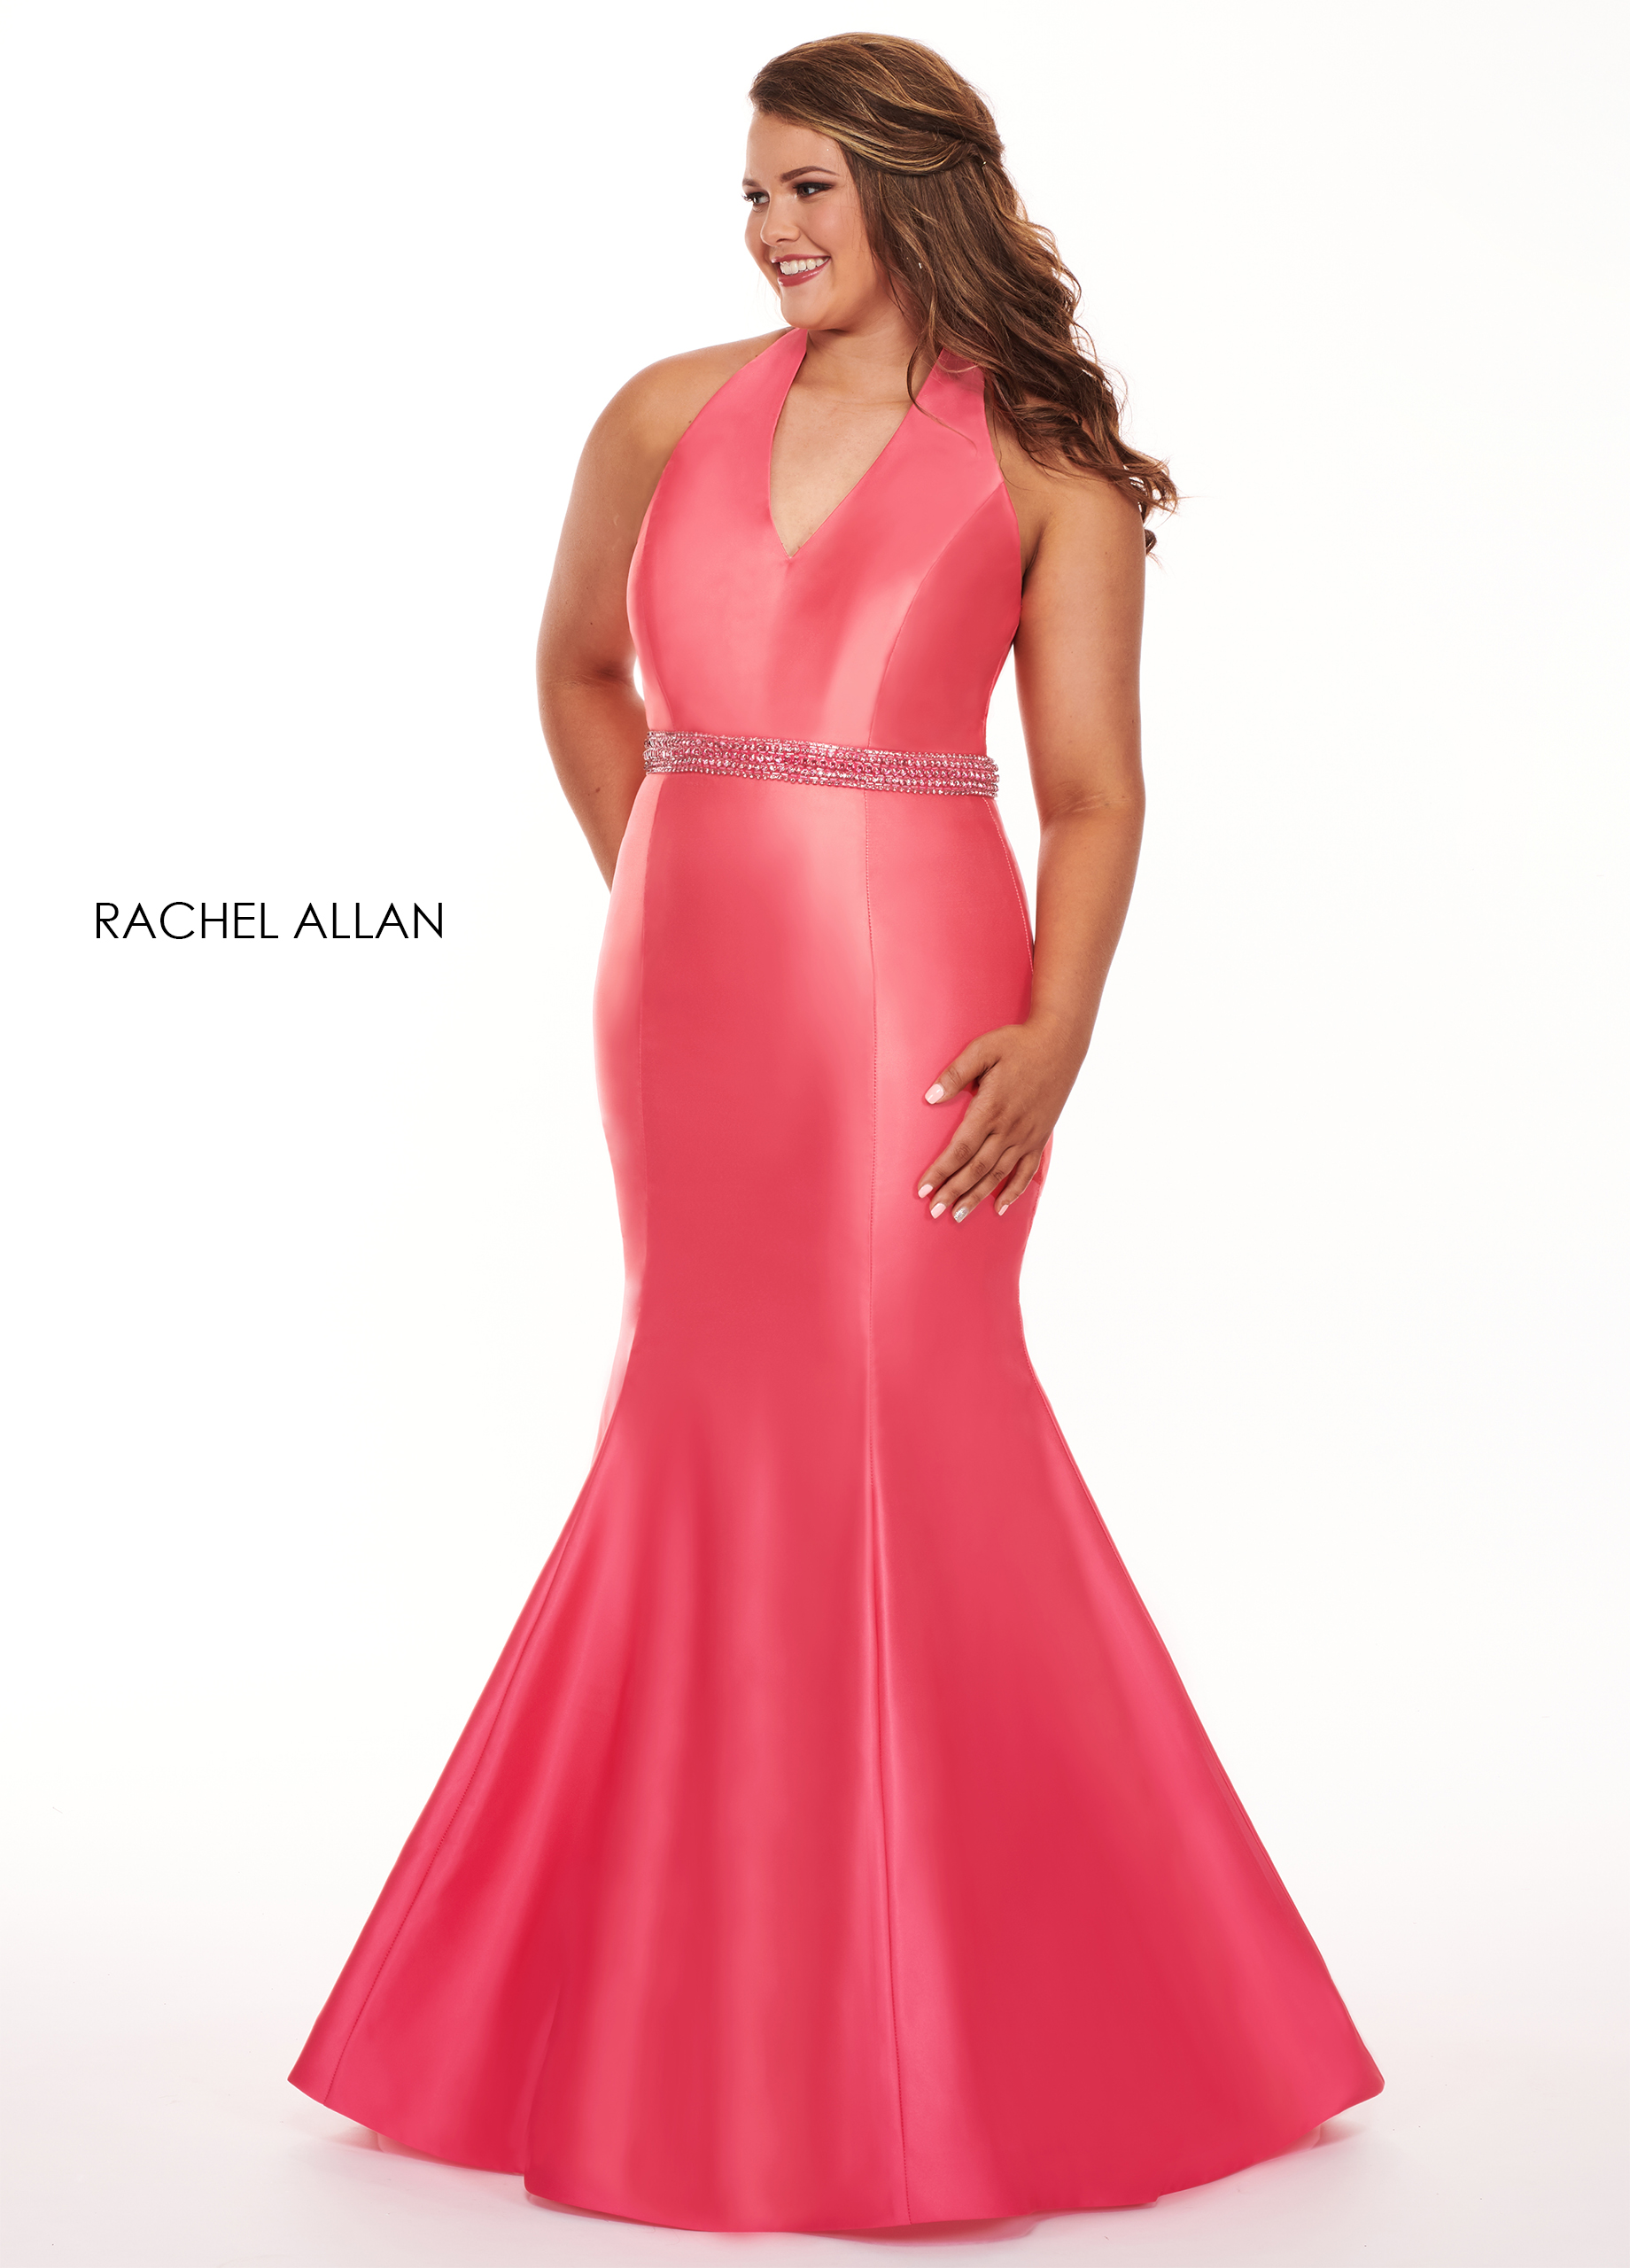 Halter Mermaid Plus Size Dresses in Red Color